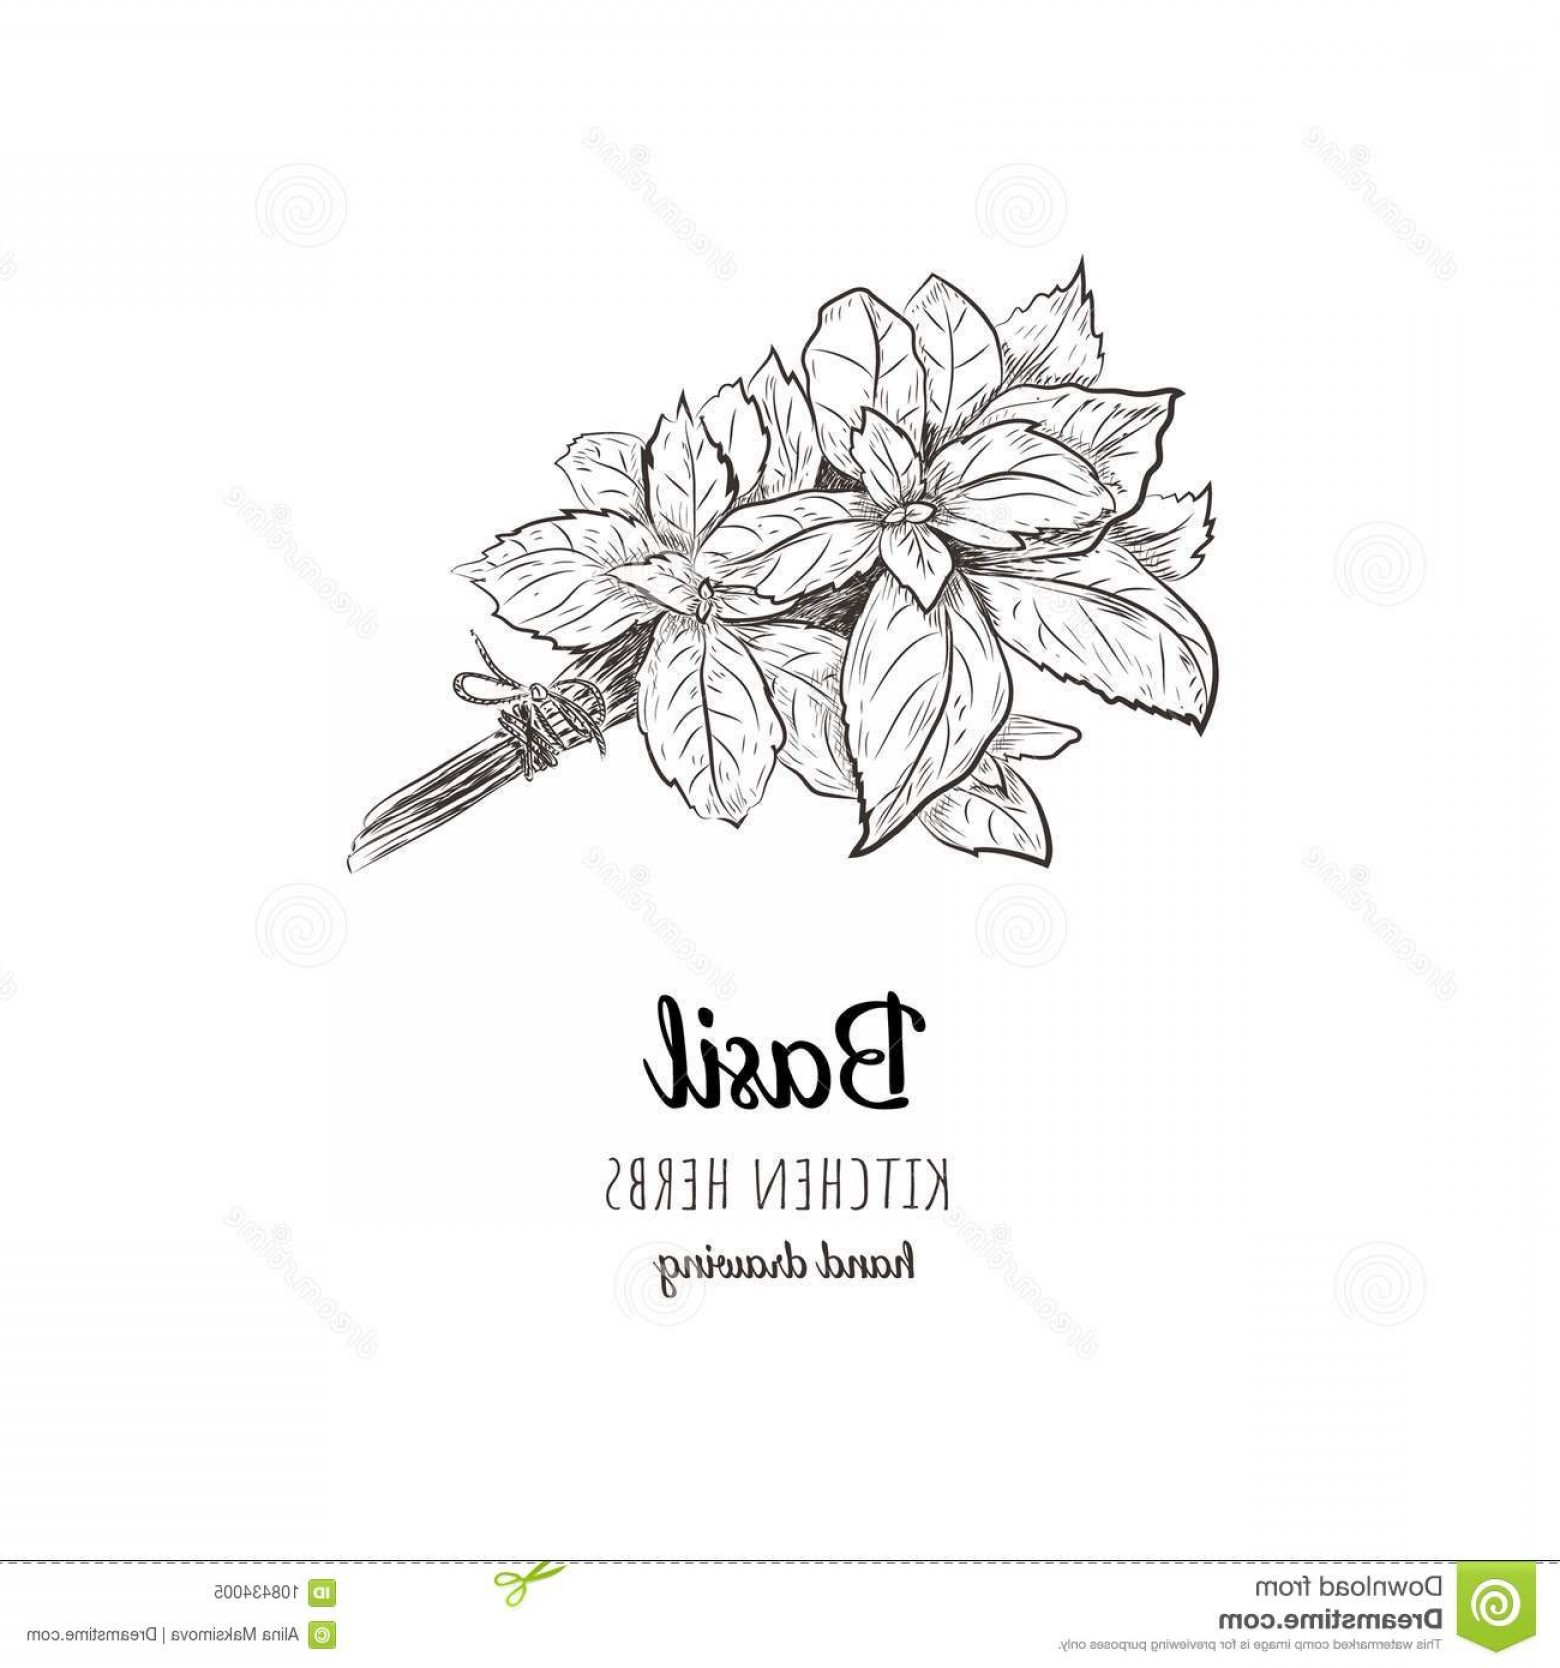 Basil Vector: Basil Vector Illustration Herbs Spices Sketch Hand Drawing Image